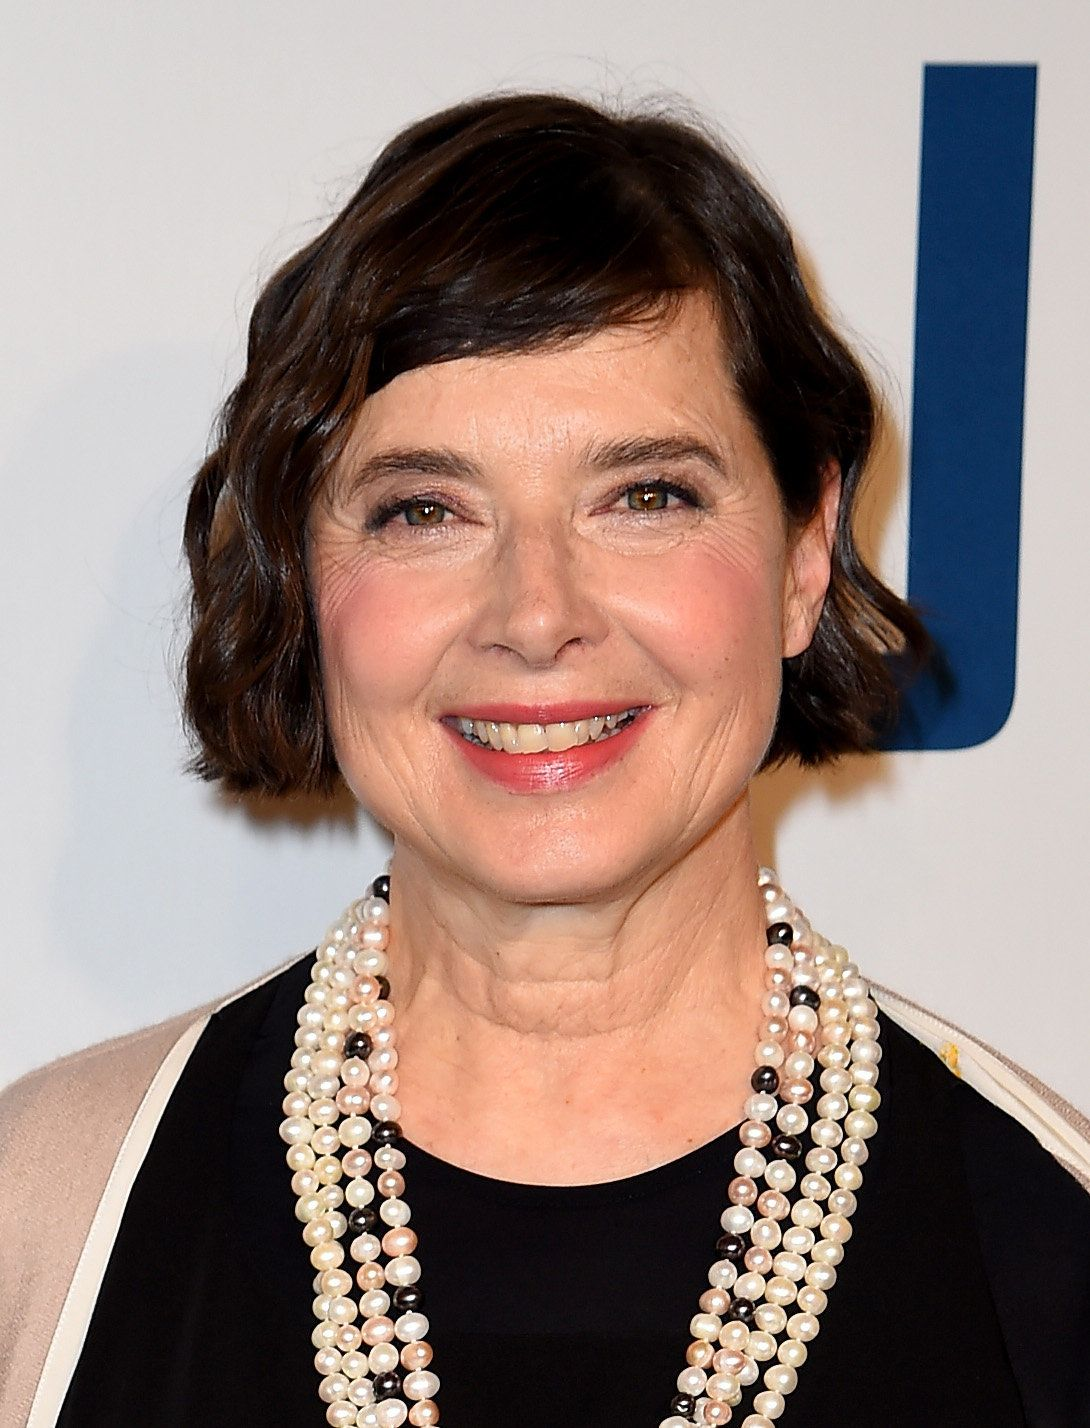 NEW YORK, NY - DECEMBER 13:  Actress Isabella Rossellini attends the 'Joy' New York Premiere at Ziegfeld Theater on December 13, 2015 in New York City.  (Photo by Nicholas Hunt/Getty Images)